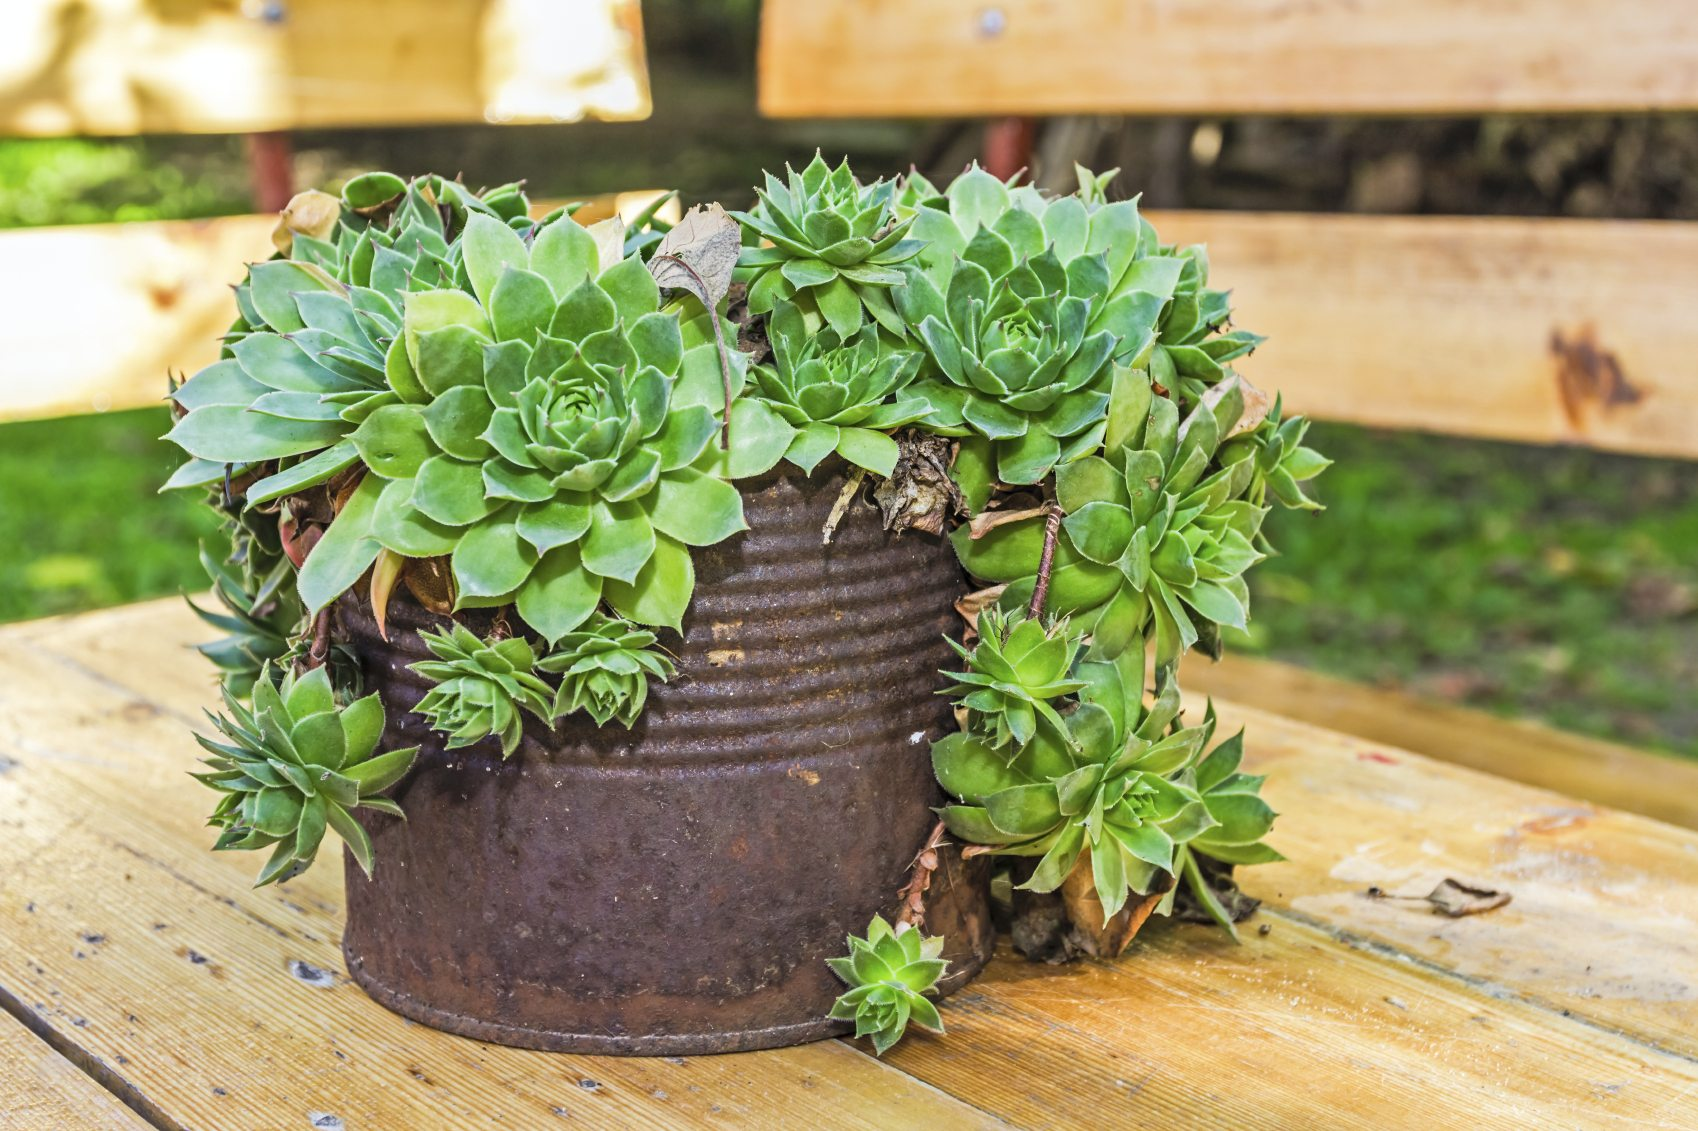 Creative Containers For Succulents Using Interesting